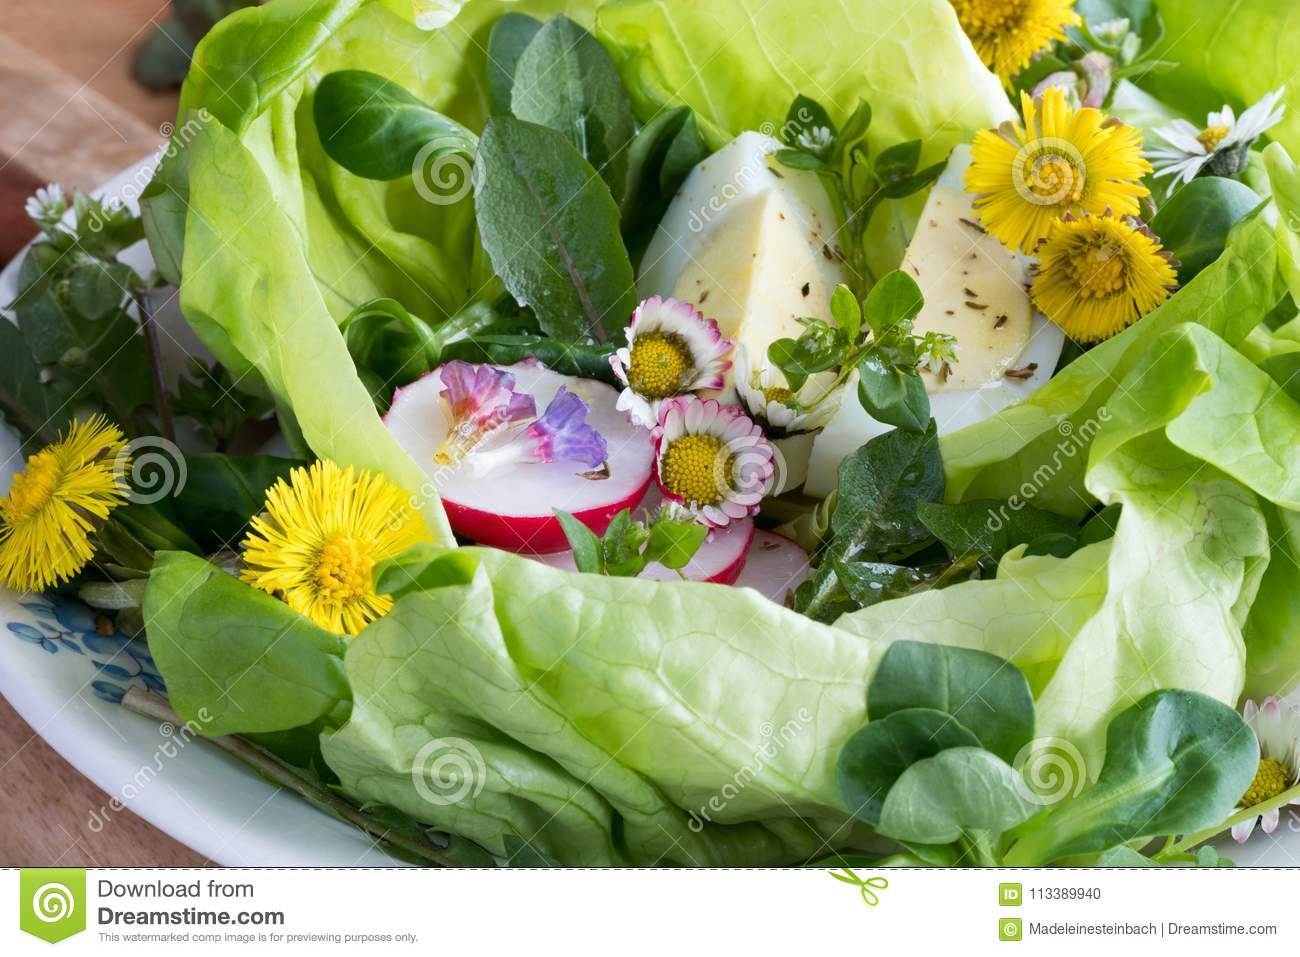 Detail of a spring salad with eggs and wild edible plants